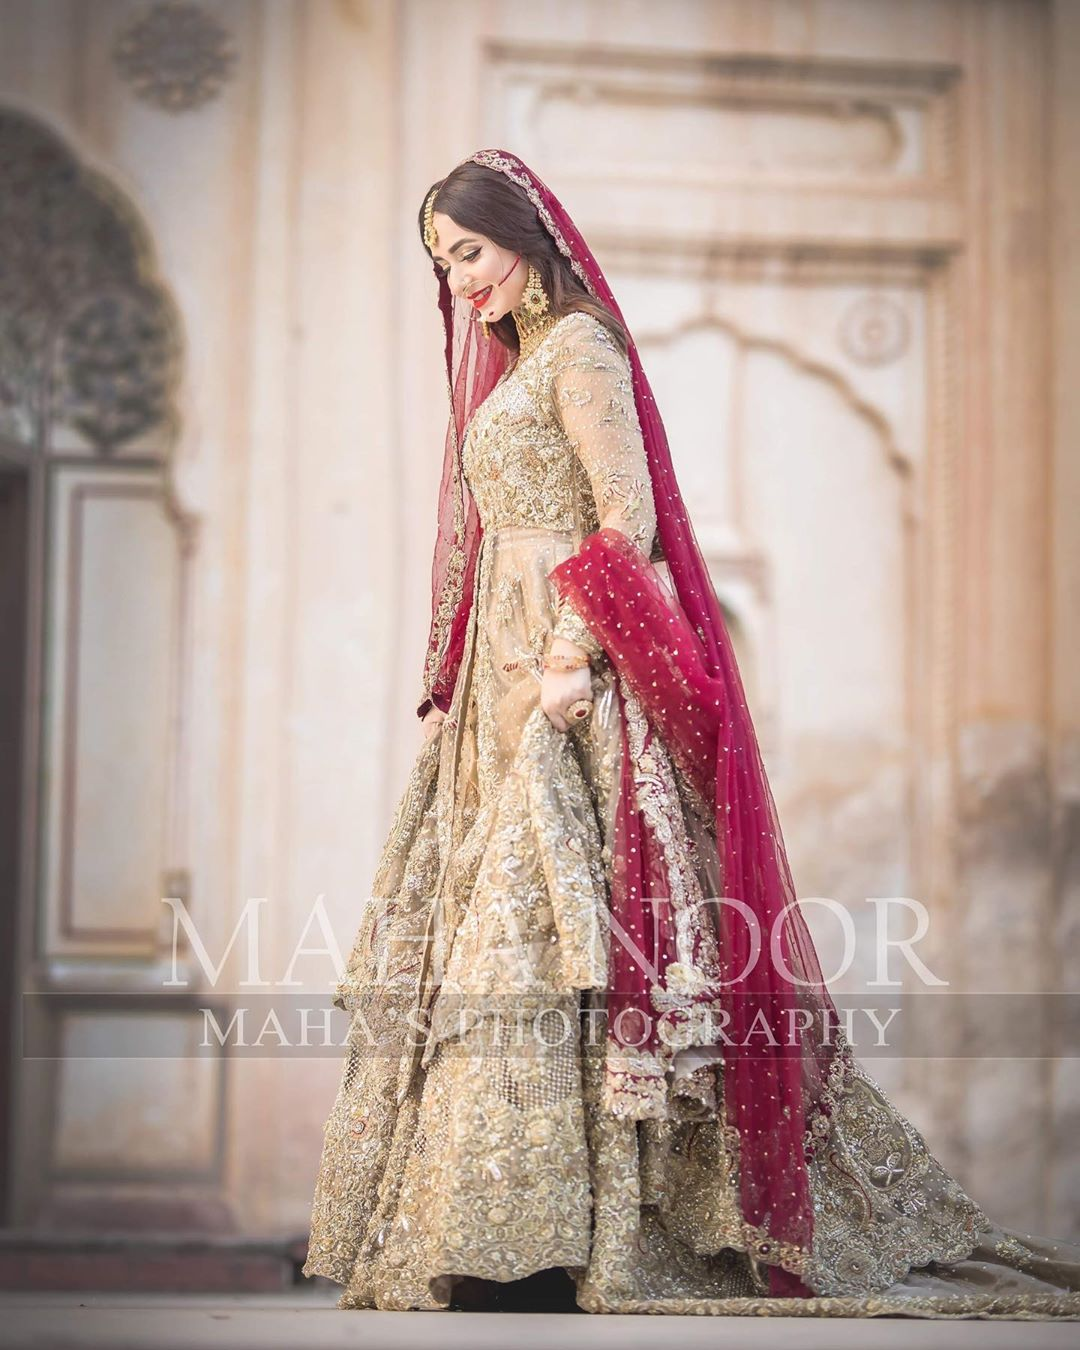 Talented Actress Yumna Zaidi is Looking Extremely Beautiful in her Latest Bridal Shoot